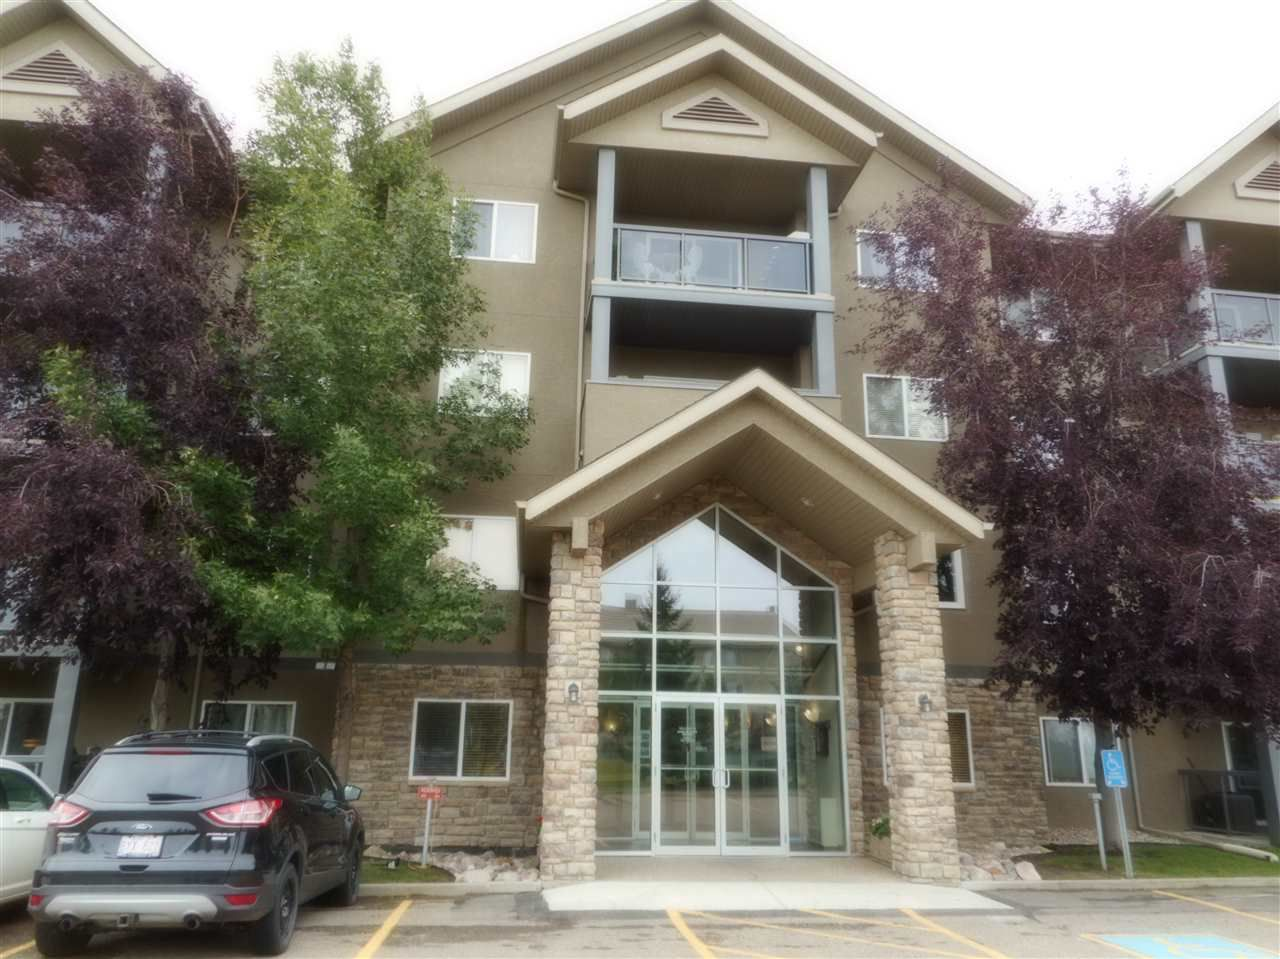 Main Photo: 434 279 Suder Greens Drive in Edmonton: Zone 58 Condo for sale : MLS®# E4126894